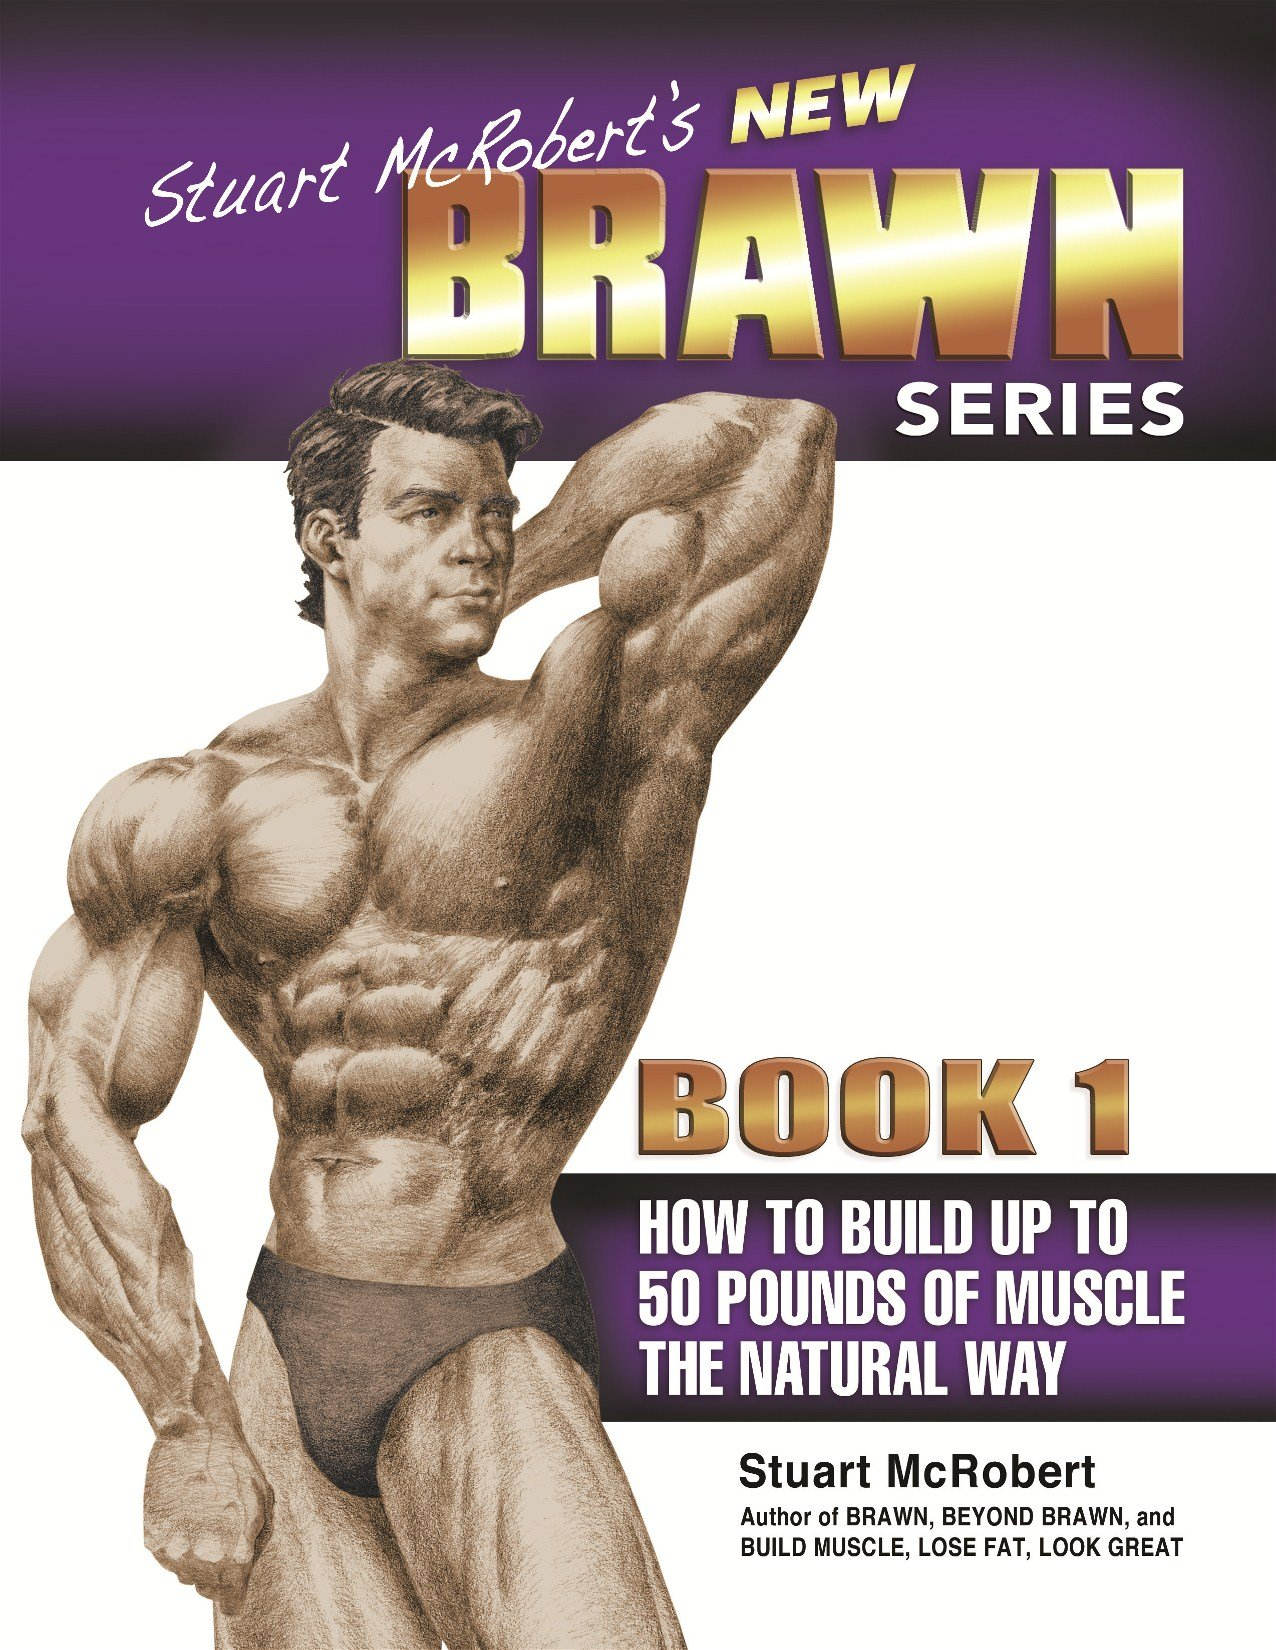 Stuart McRobert's New BRAWN Series, Book 1: How to Build up to 50 Pounds of  Muscle the Natural Way: Stuart McRobert: 9789963999125: Amazon.com: Books